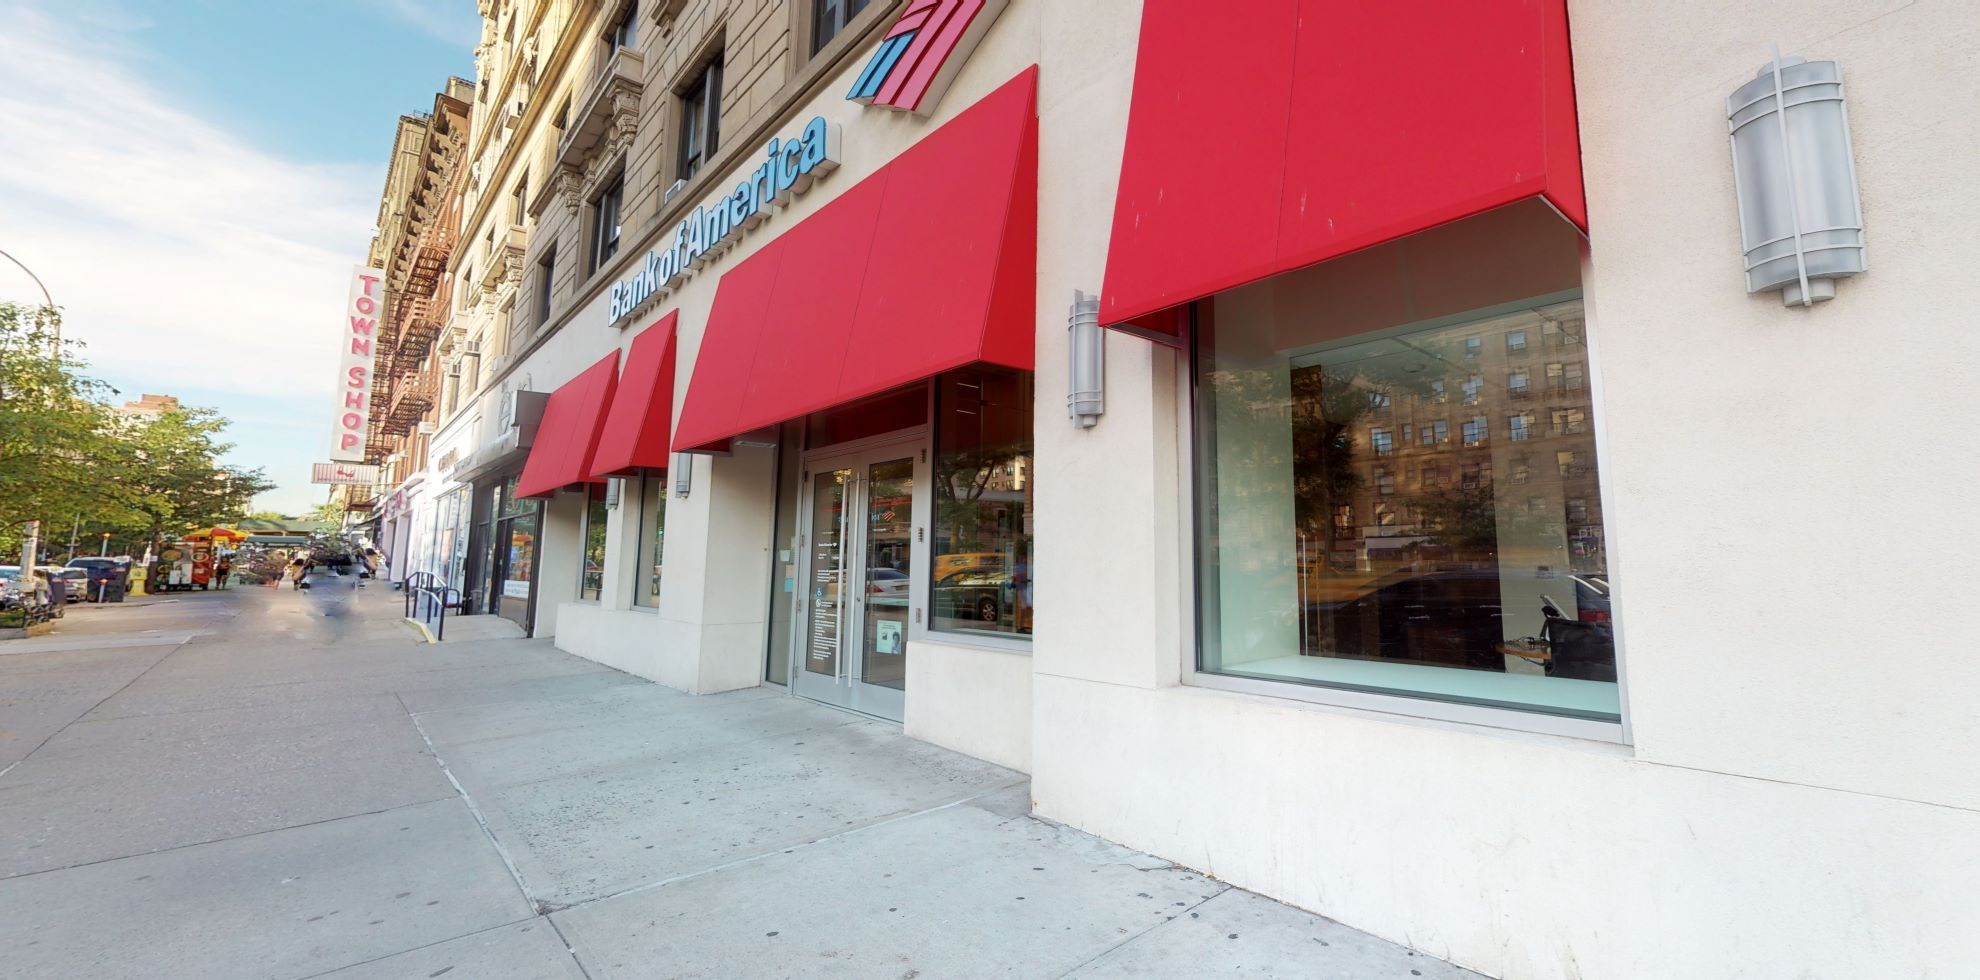 Bank of America financial center with walk-up ATM | 2260 Broadway, New York, NY 10024